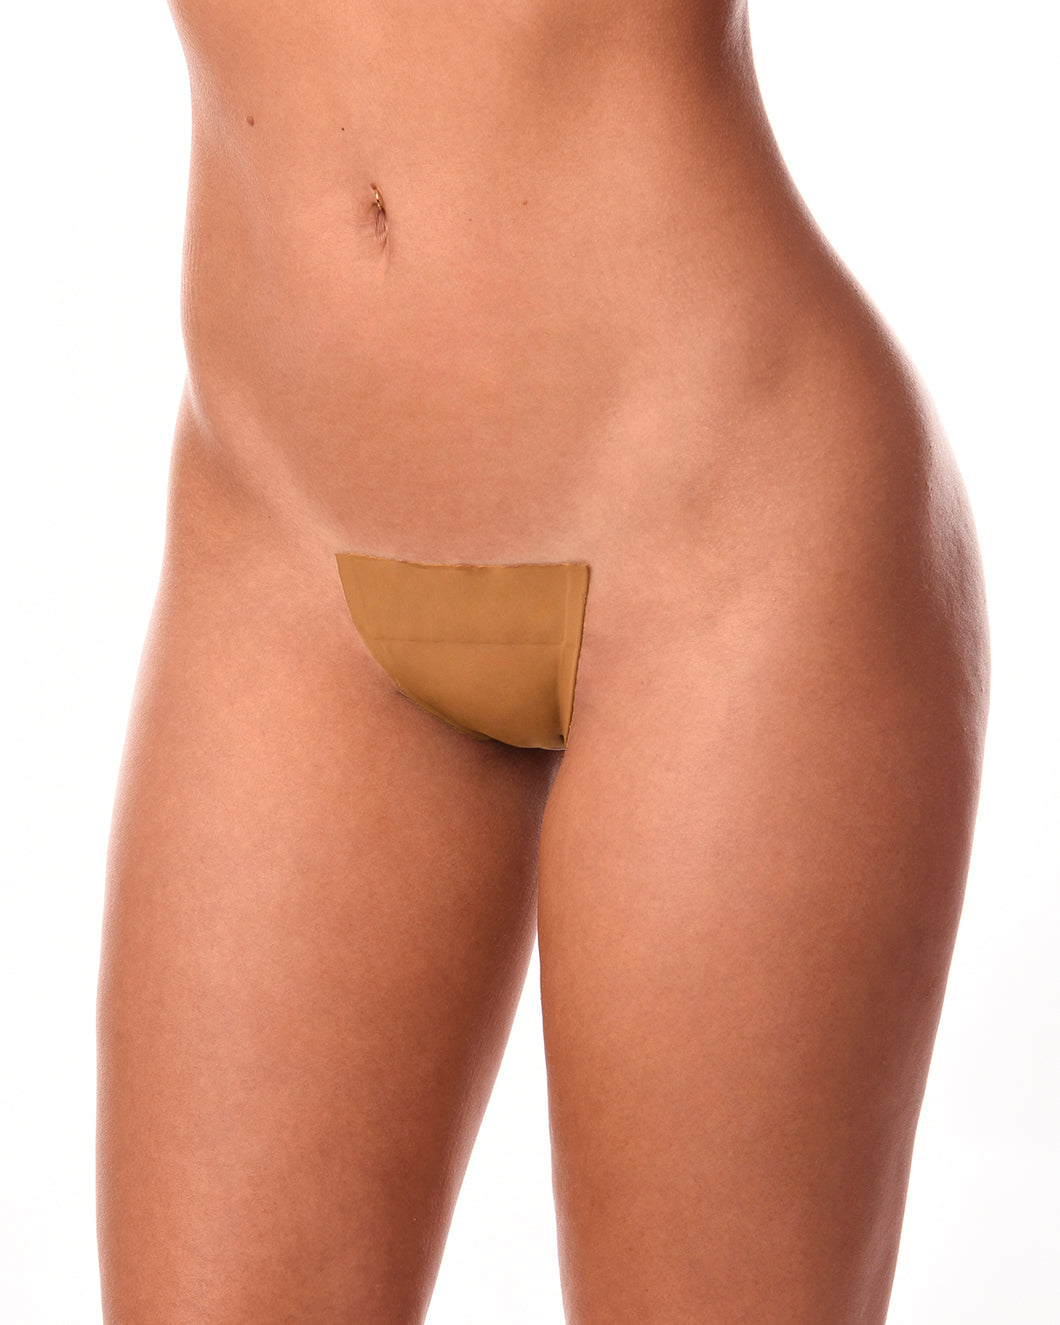 No-Line Classic Shibue Strapless Panty